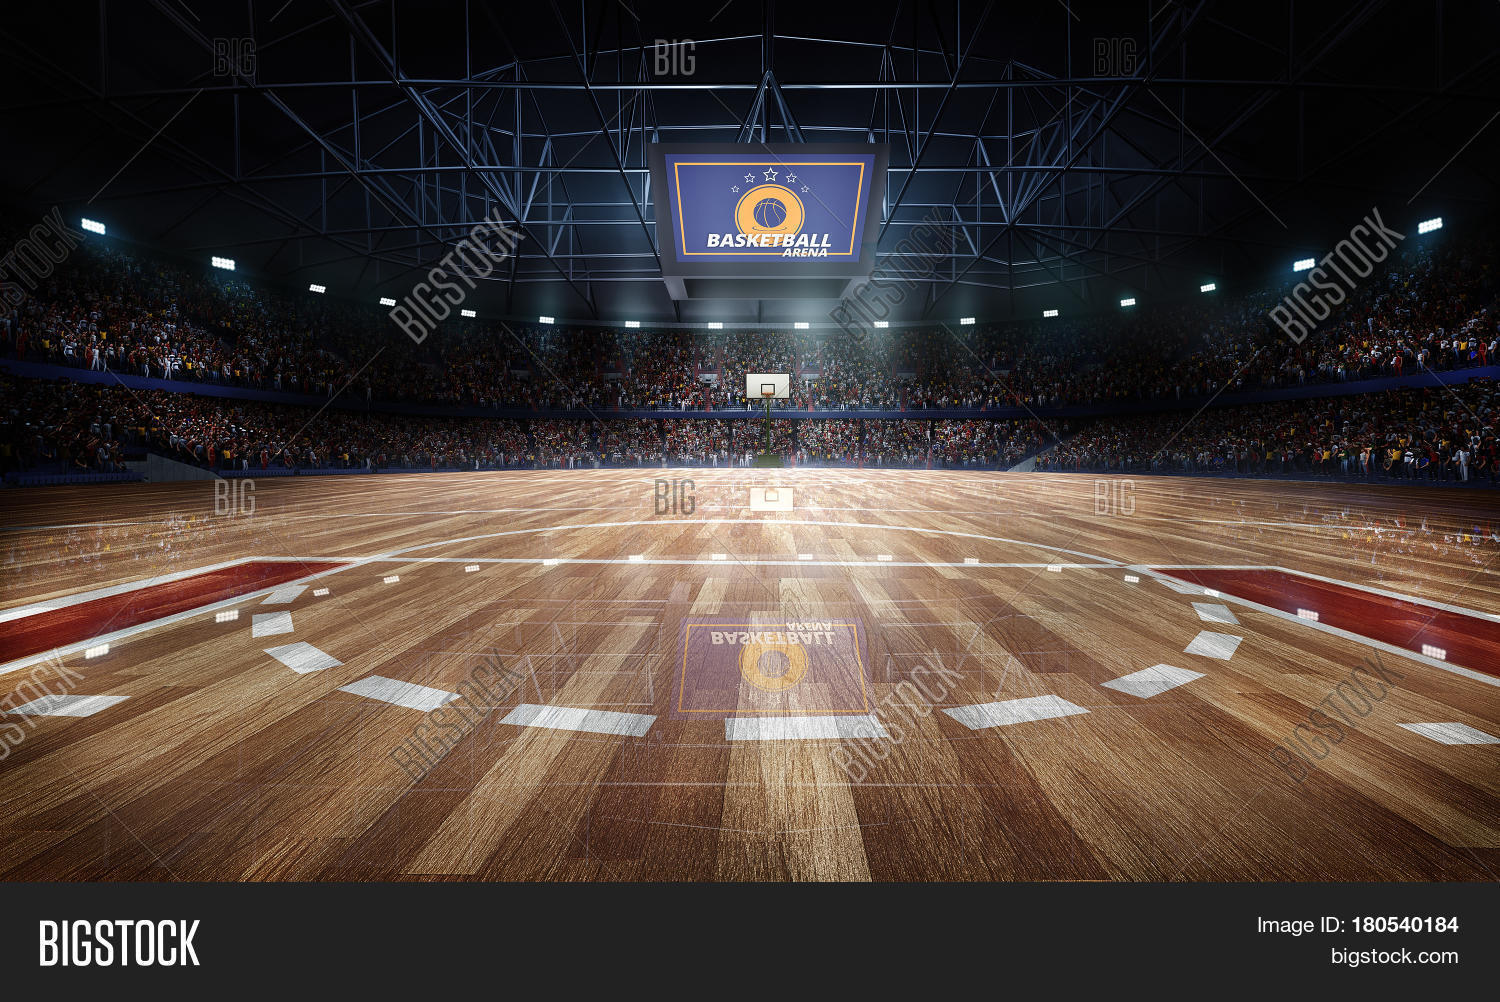 Professional basketball court arena image photo bigstock for How wide is a basketball court